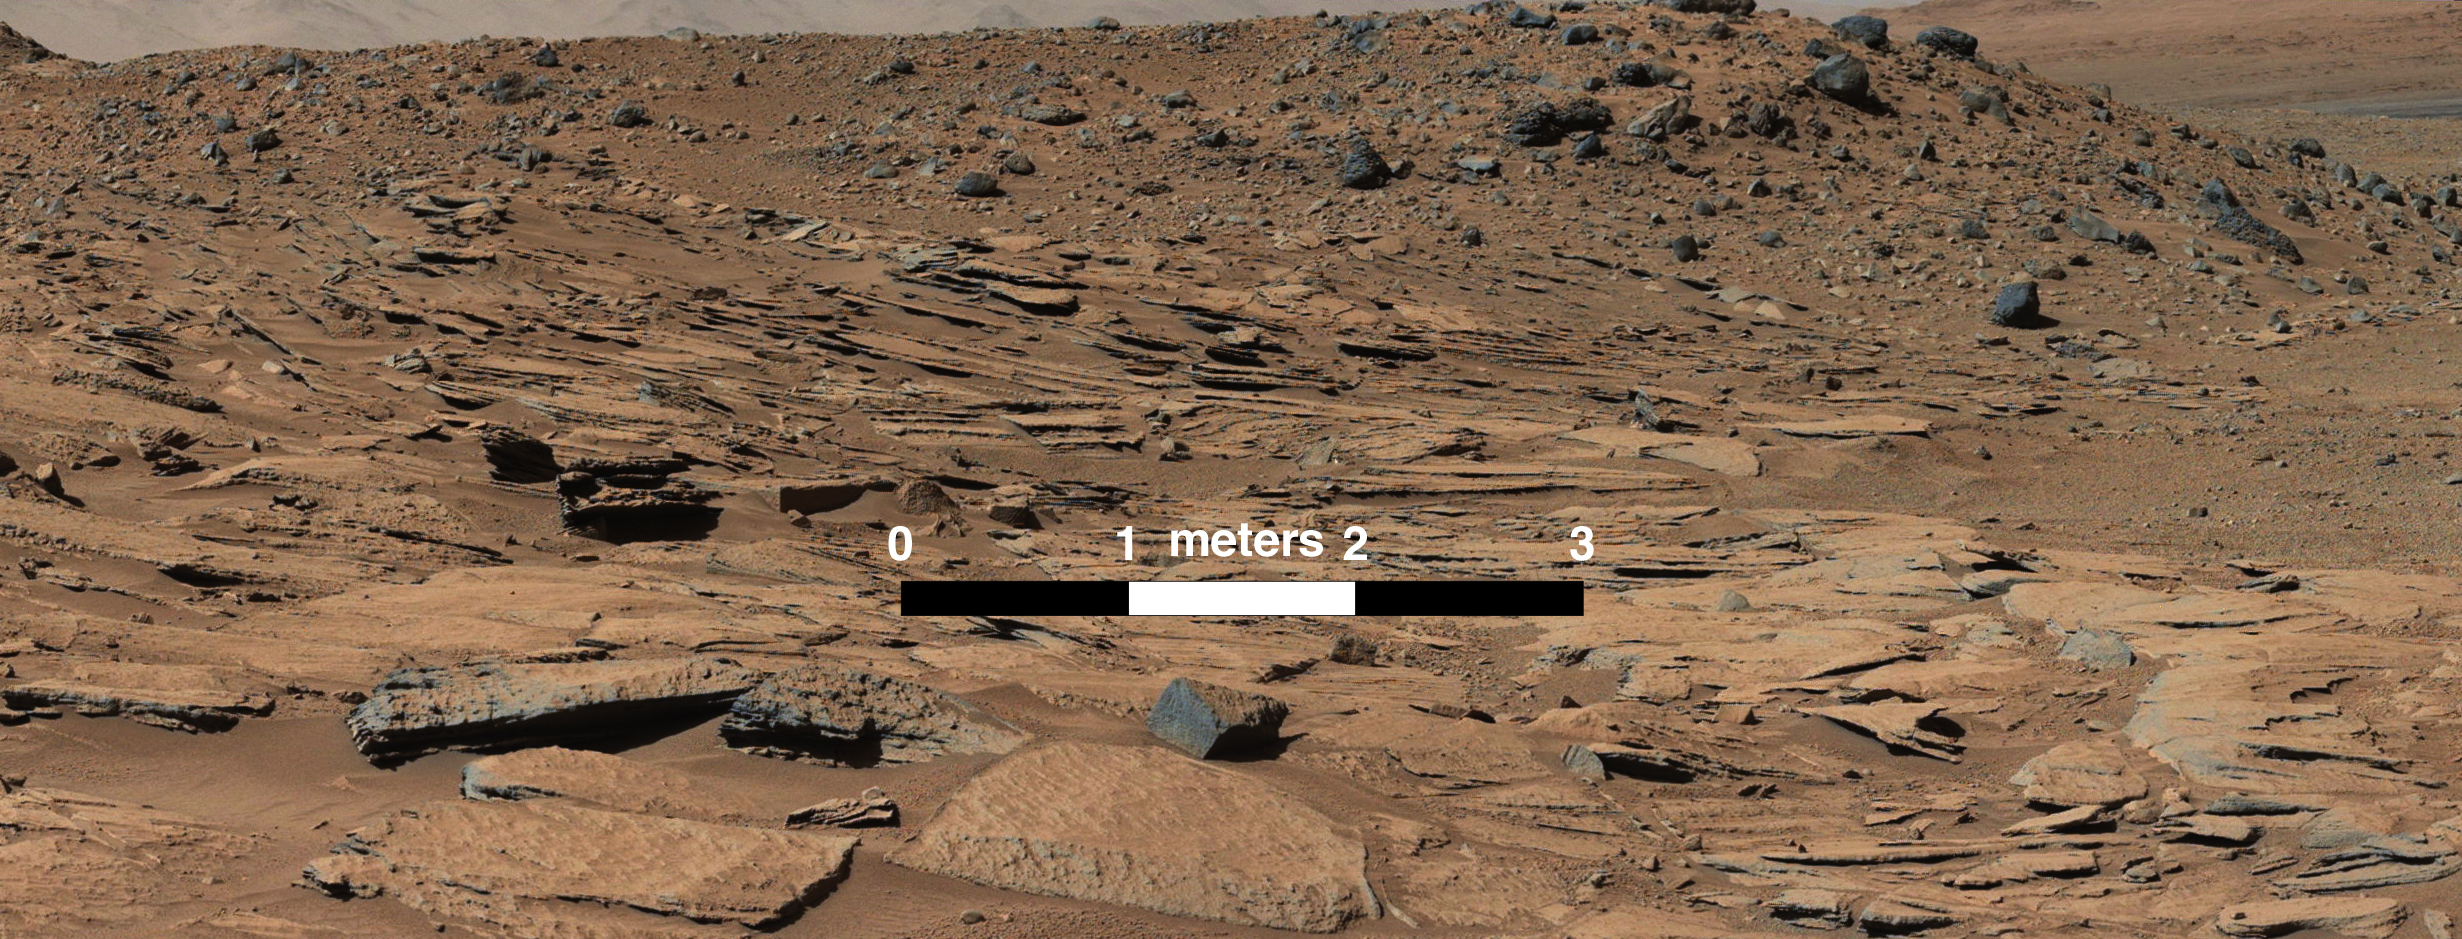 NASA s Curiosity Rover Finds Clues to How Water Helped Shape